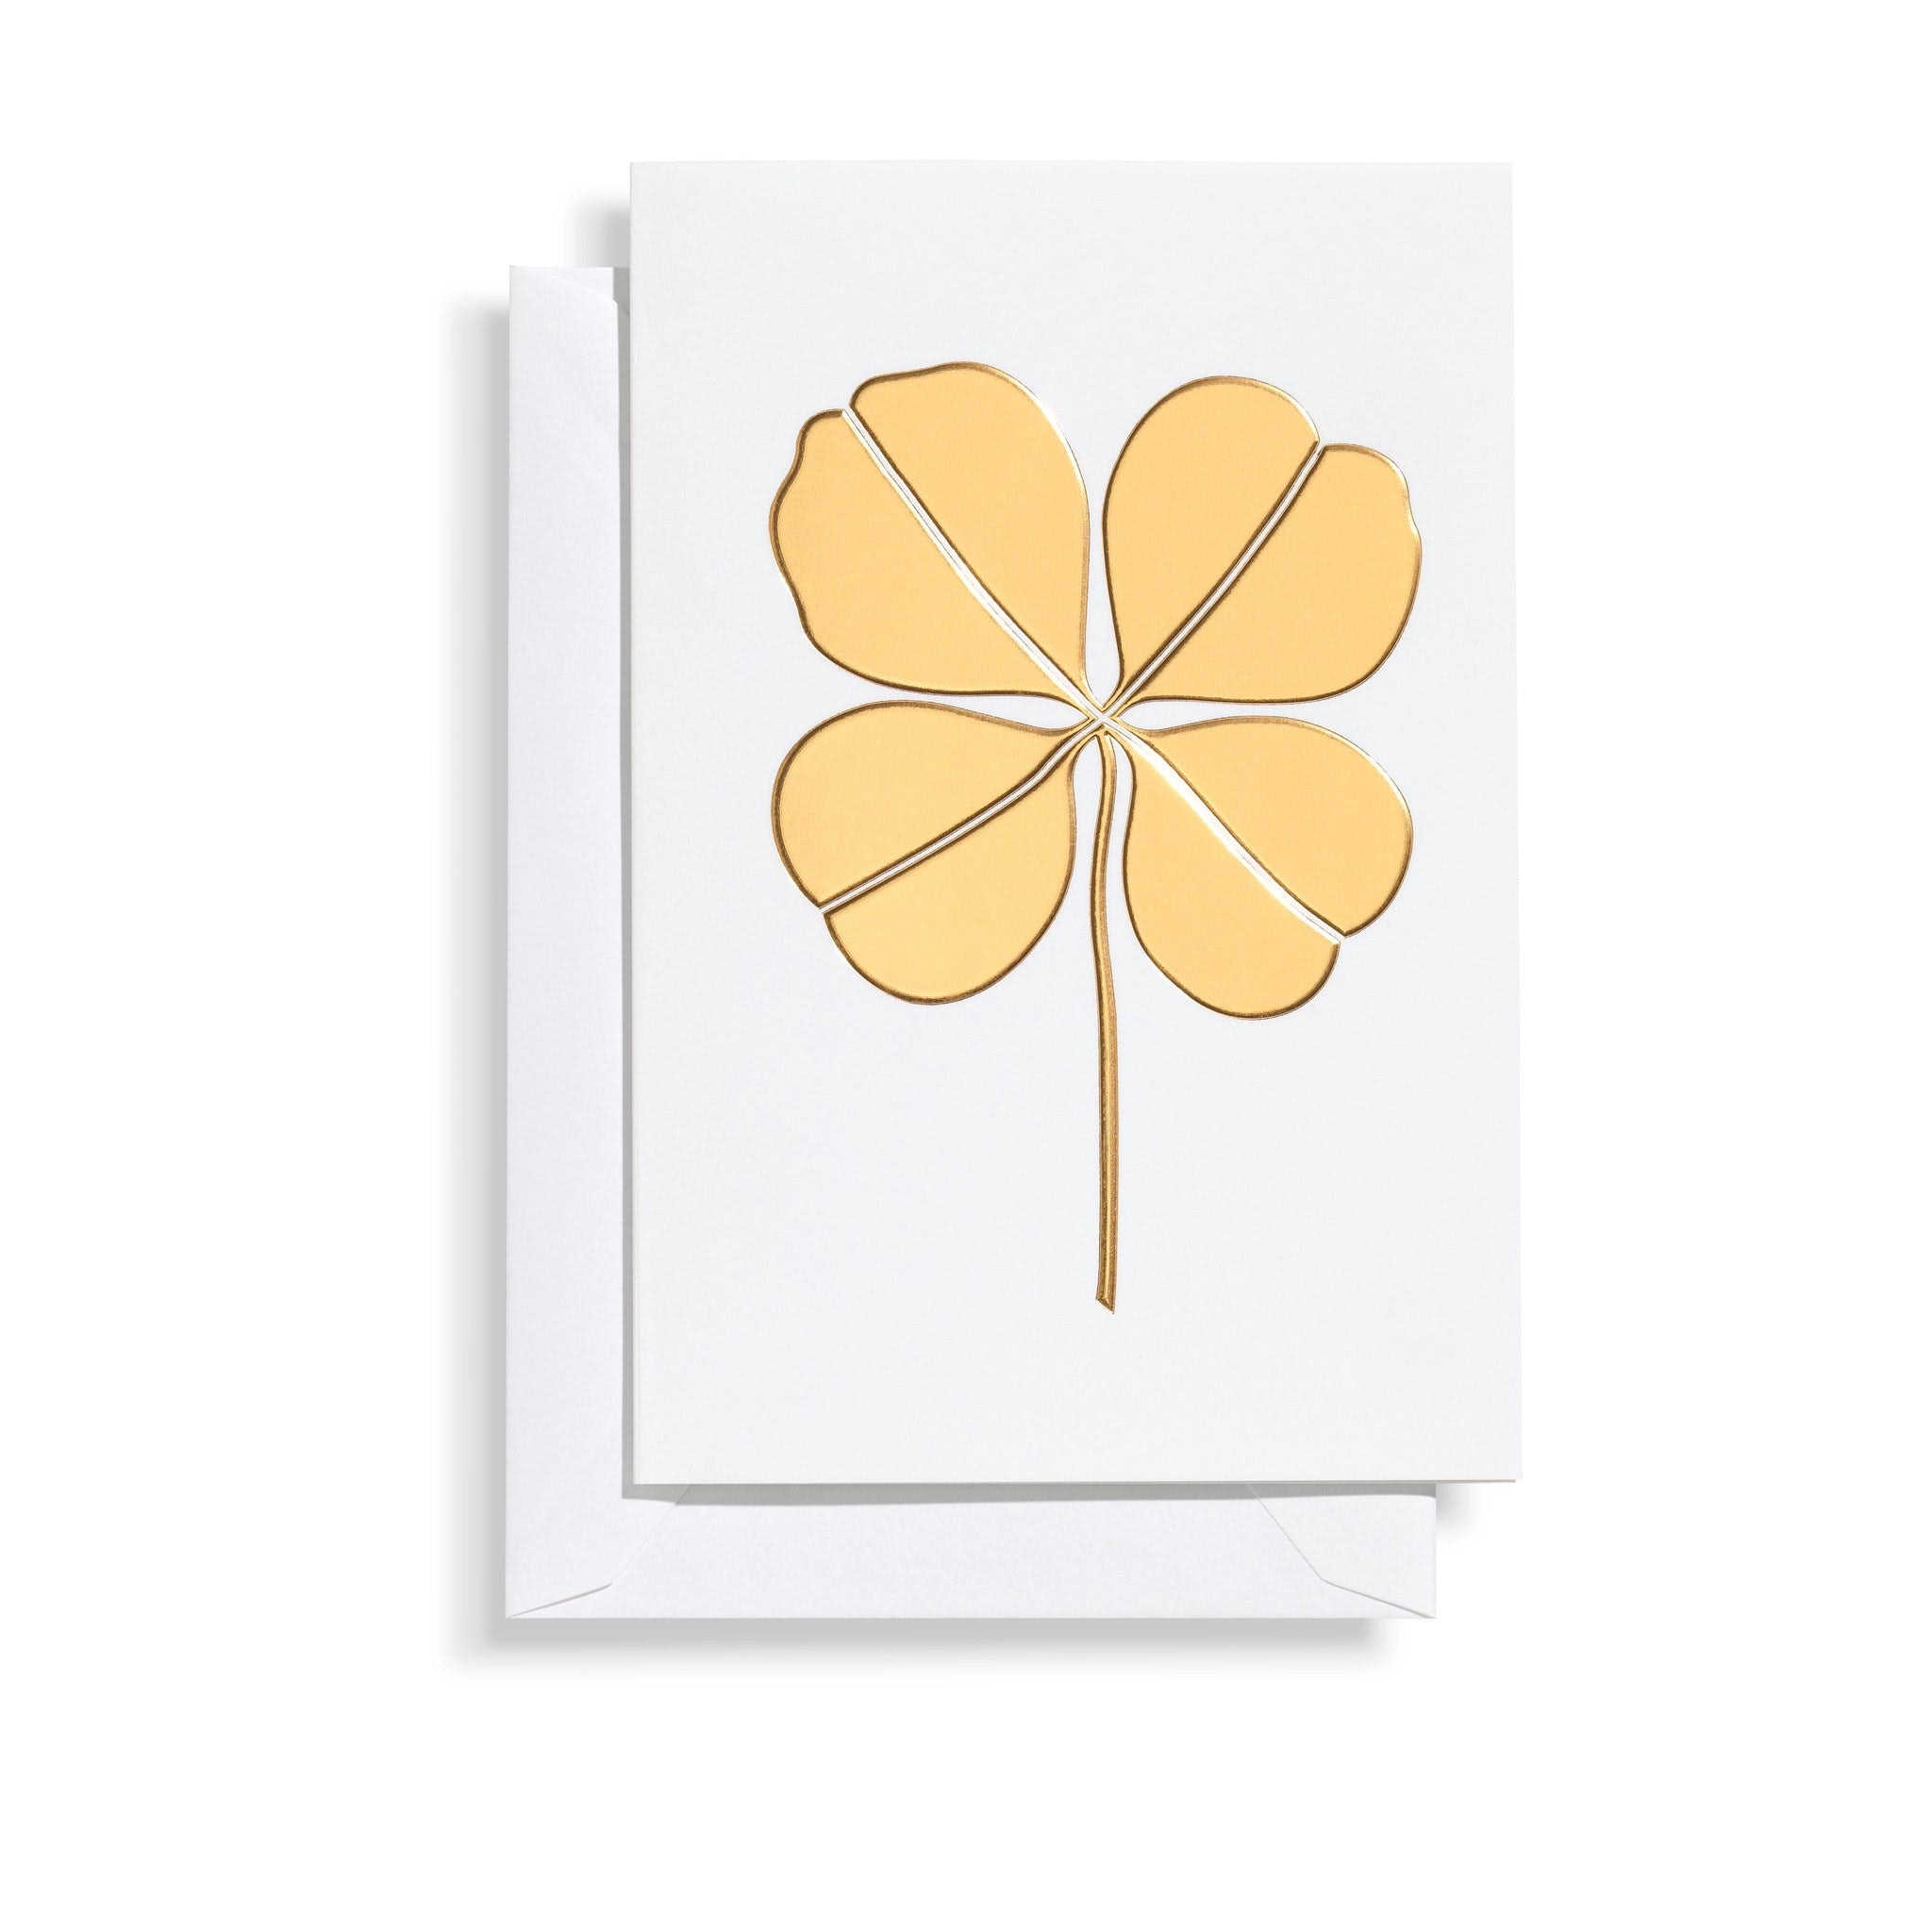 Four Leaf Clover Card - Gold by Vitra